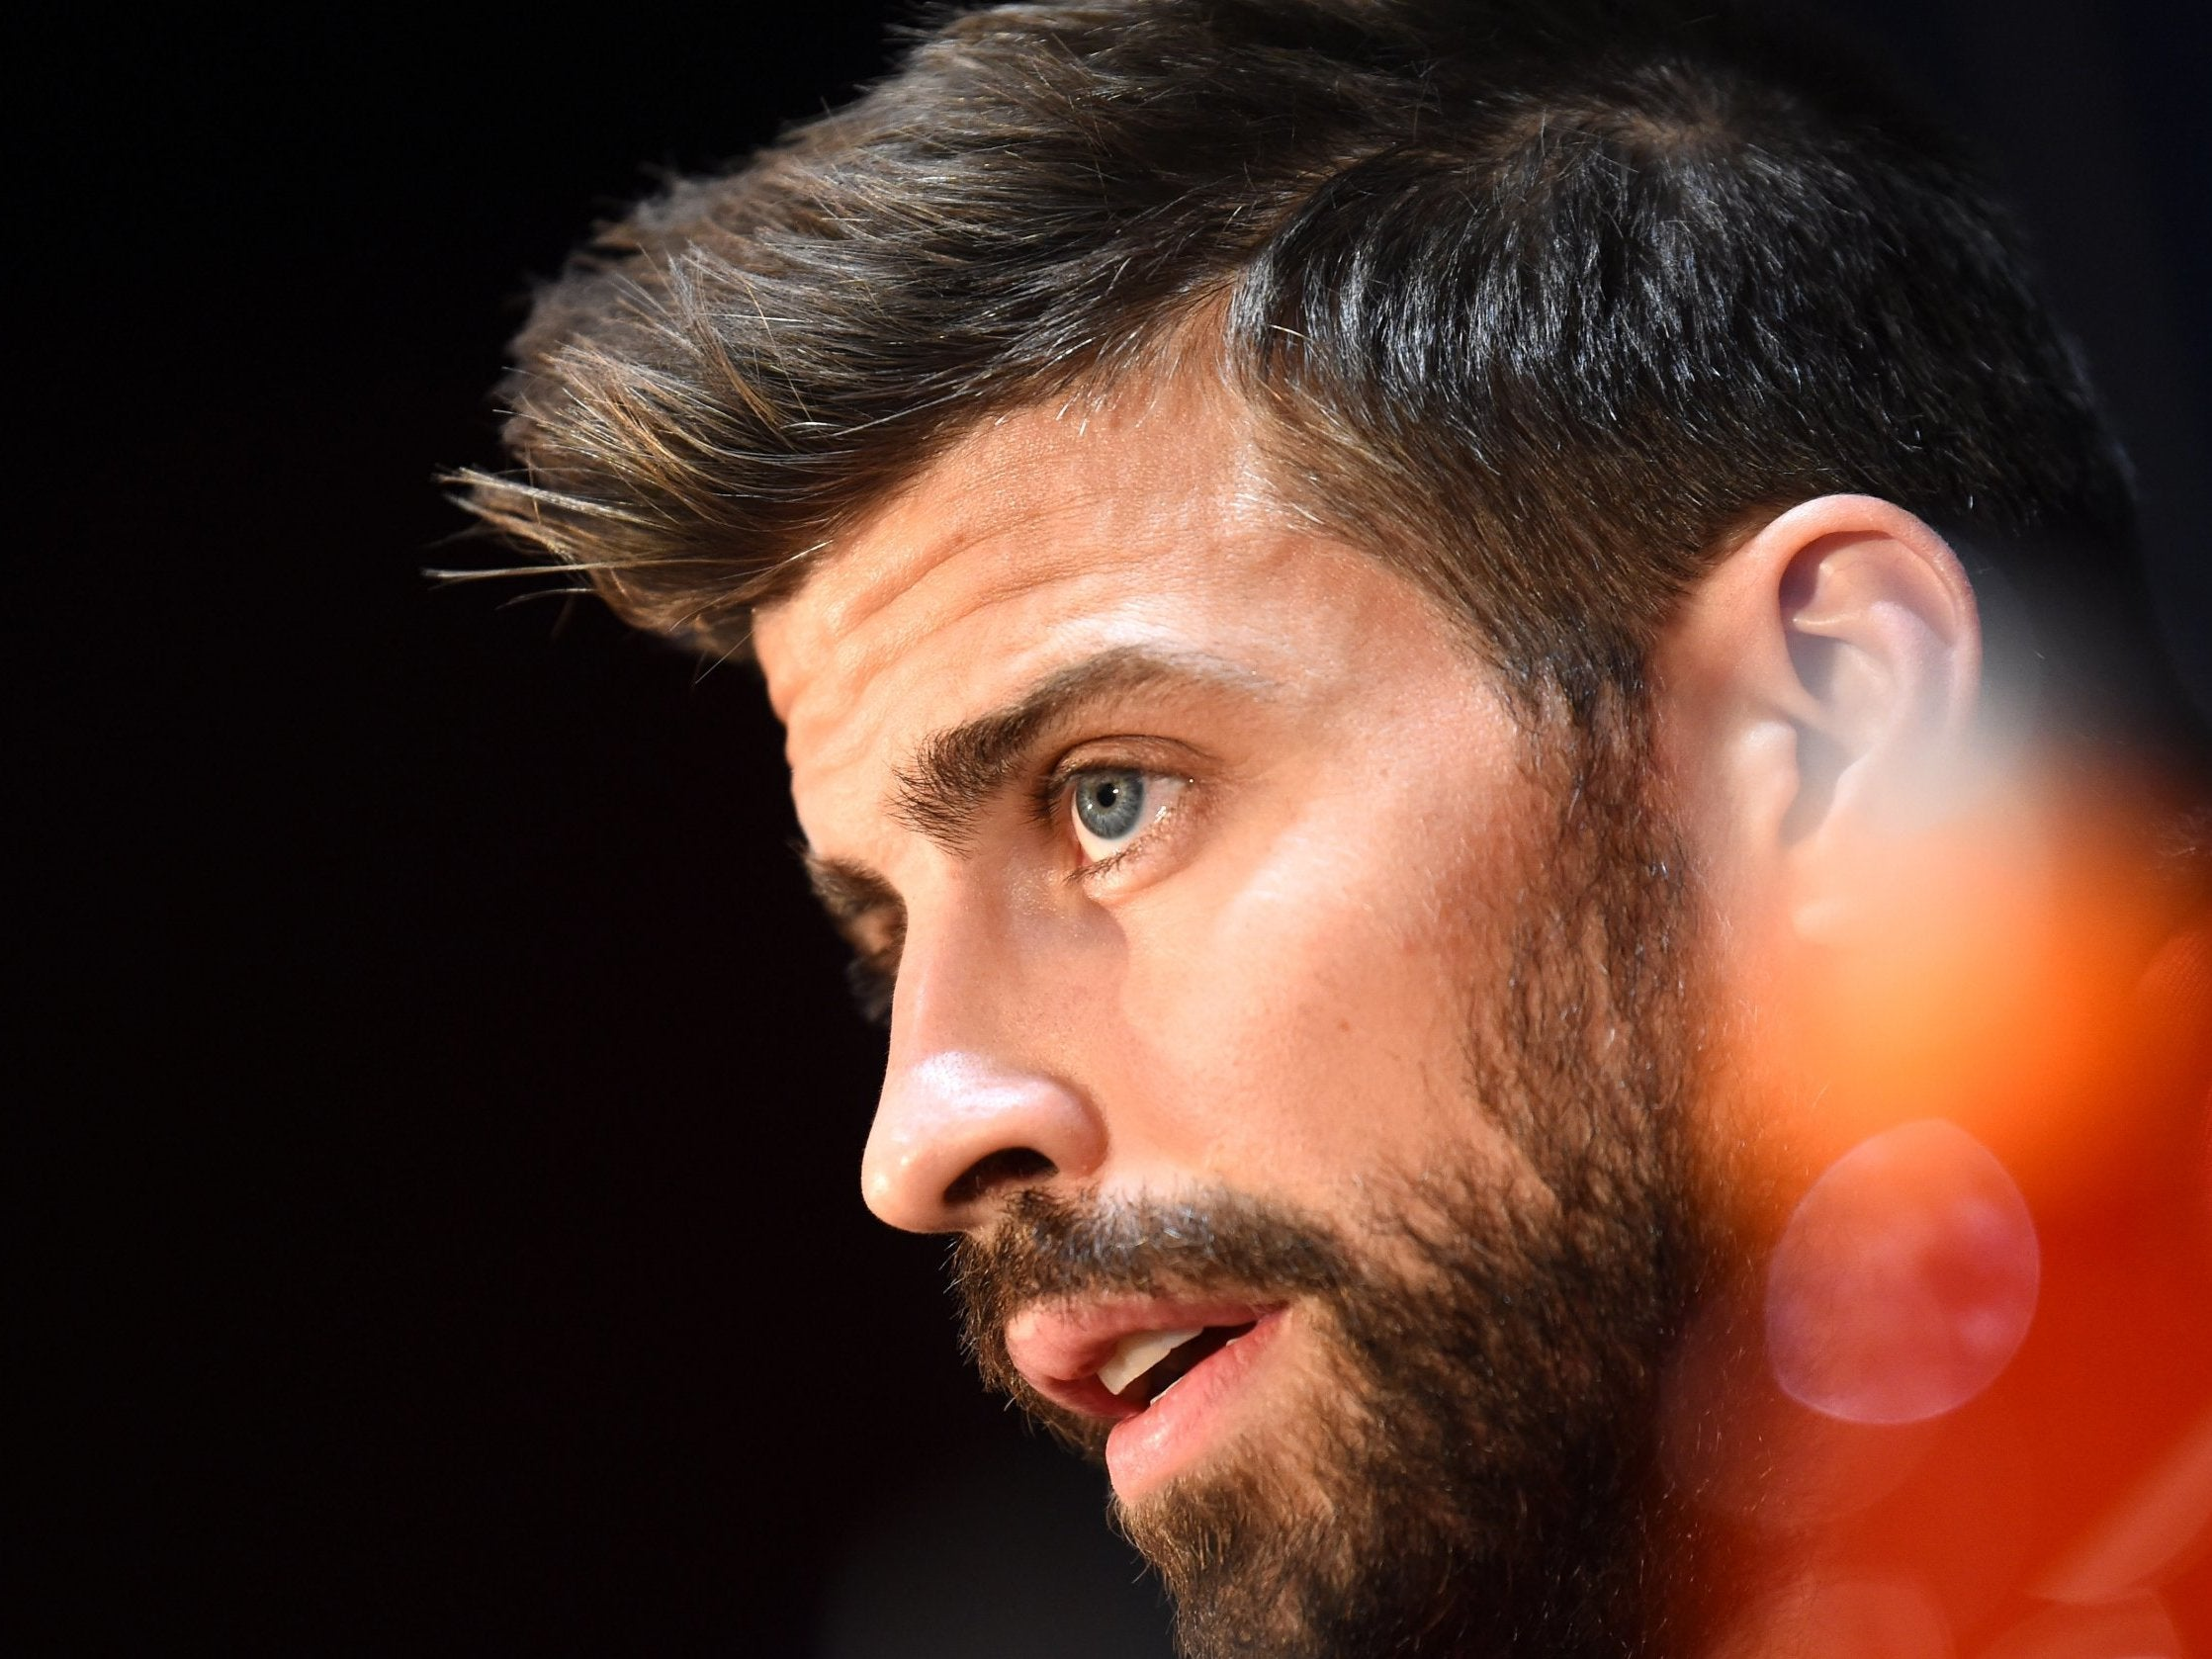 Gerard-Pique-is-aware-of-the-threat-Man-United-posejpg